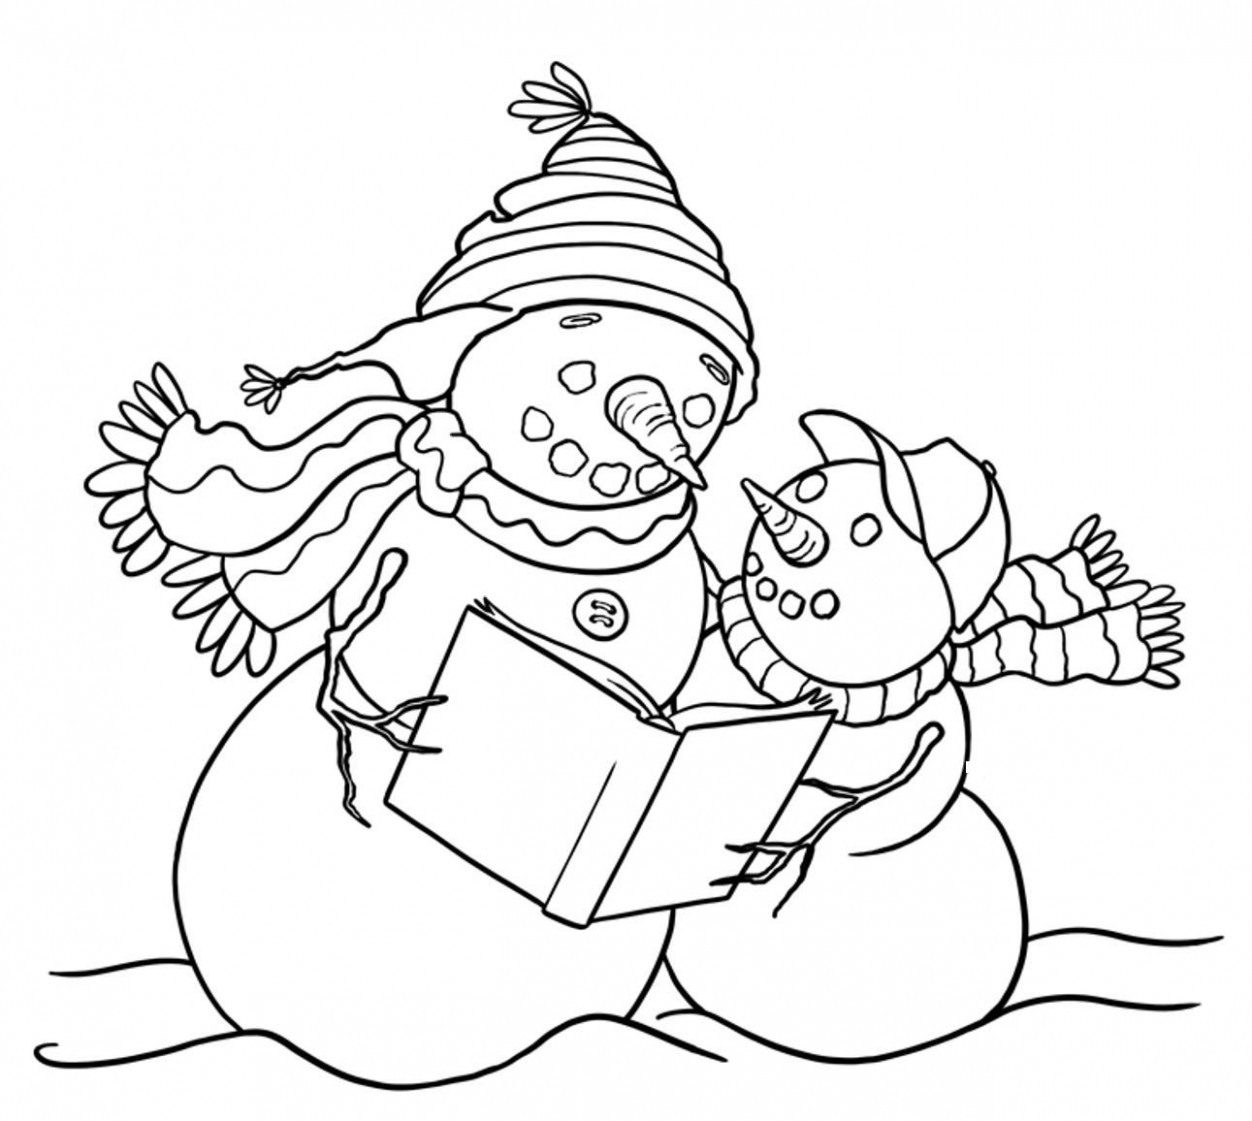 Snowman Coloring Pages | Holiday Coloring Pages | Printable ..